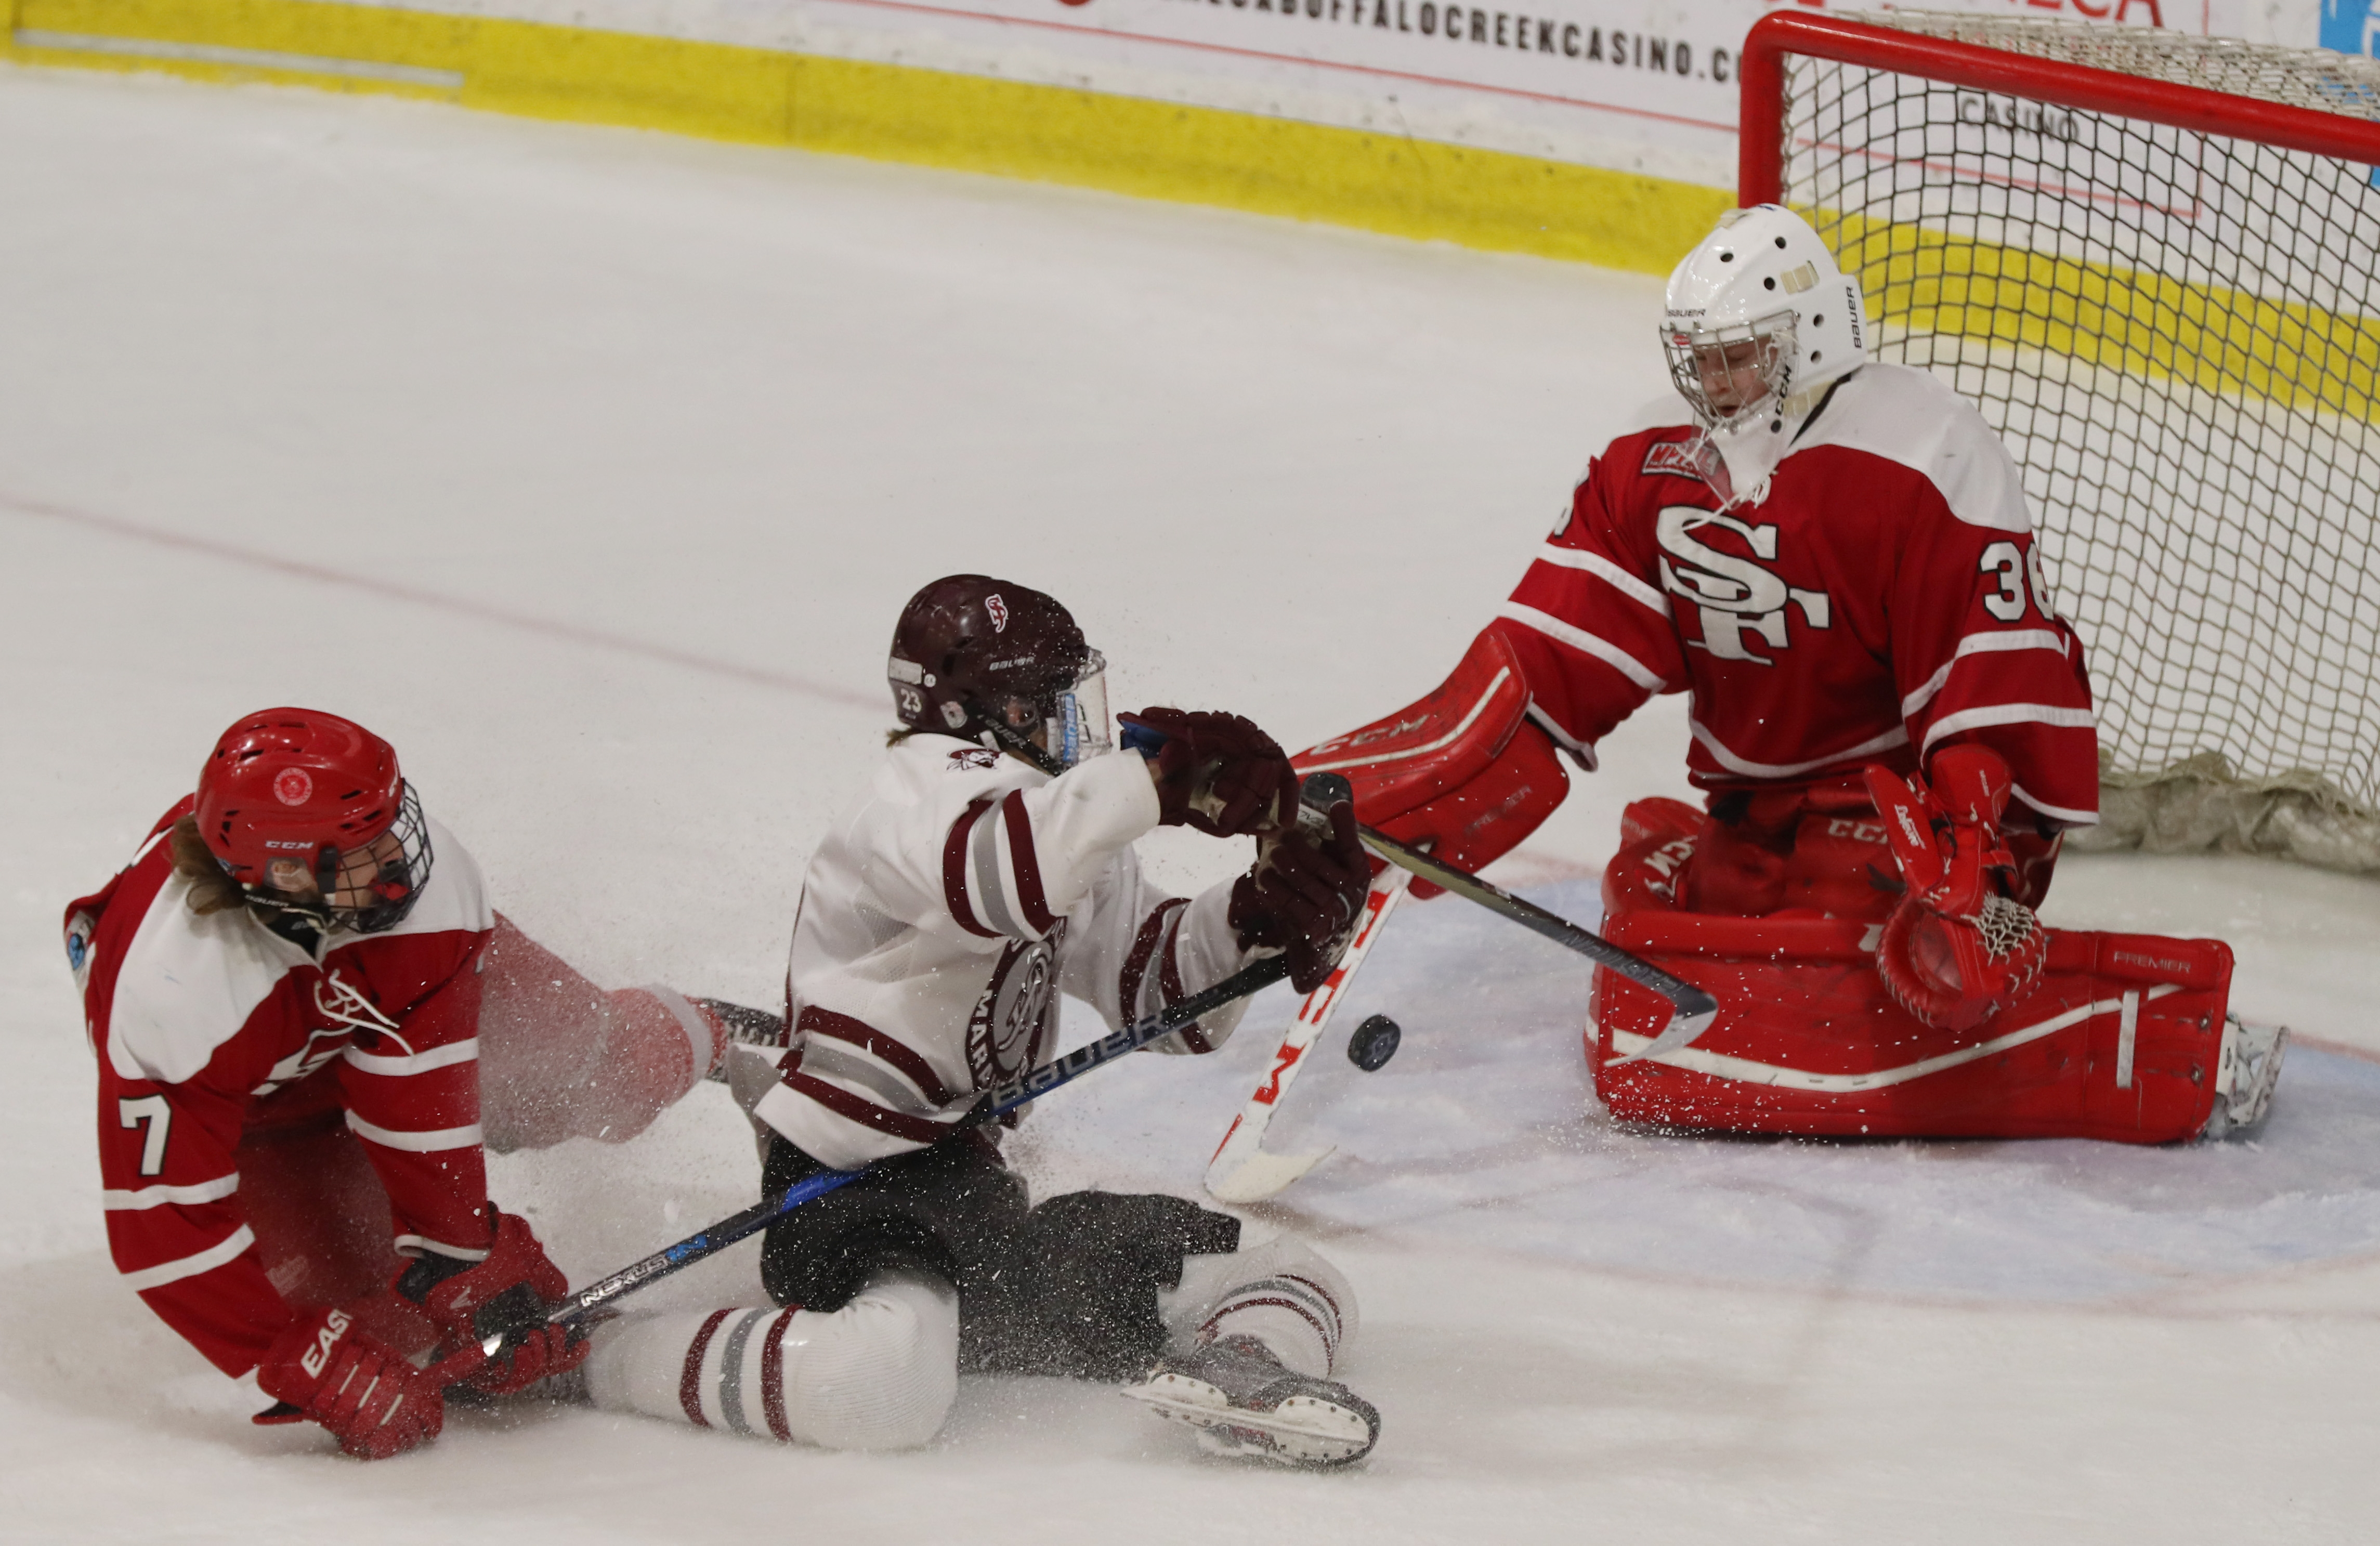 Nathan Berke of St. Joe's was awarded a penalty shot after he was pulled down from behind by St. Francis' Nathan Howayek in front of goalie Vincent Vaccaro in their Niagara Cup semifinal. St. Joe's won, 9-0, and will face Canisius for the championship.